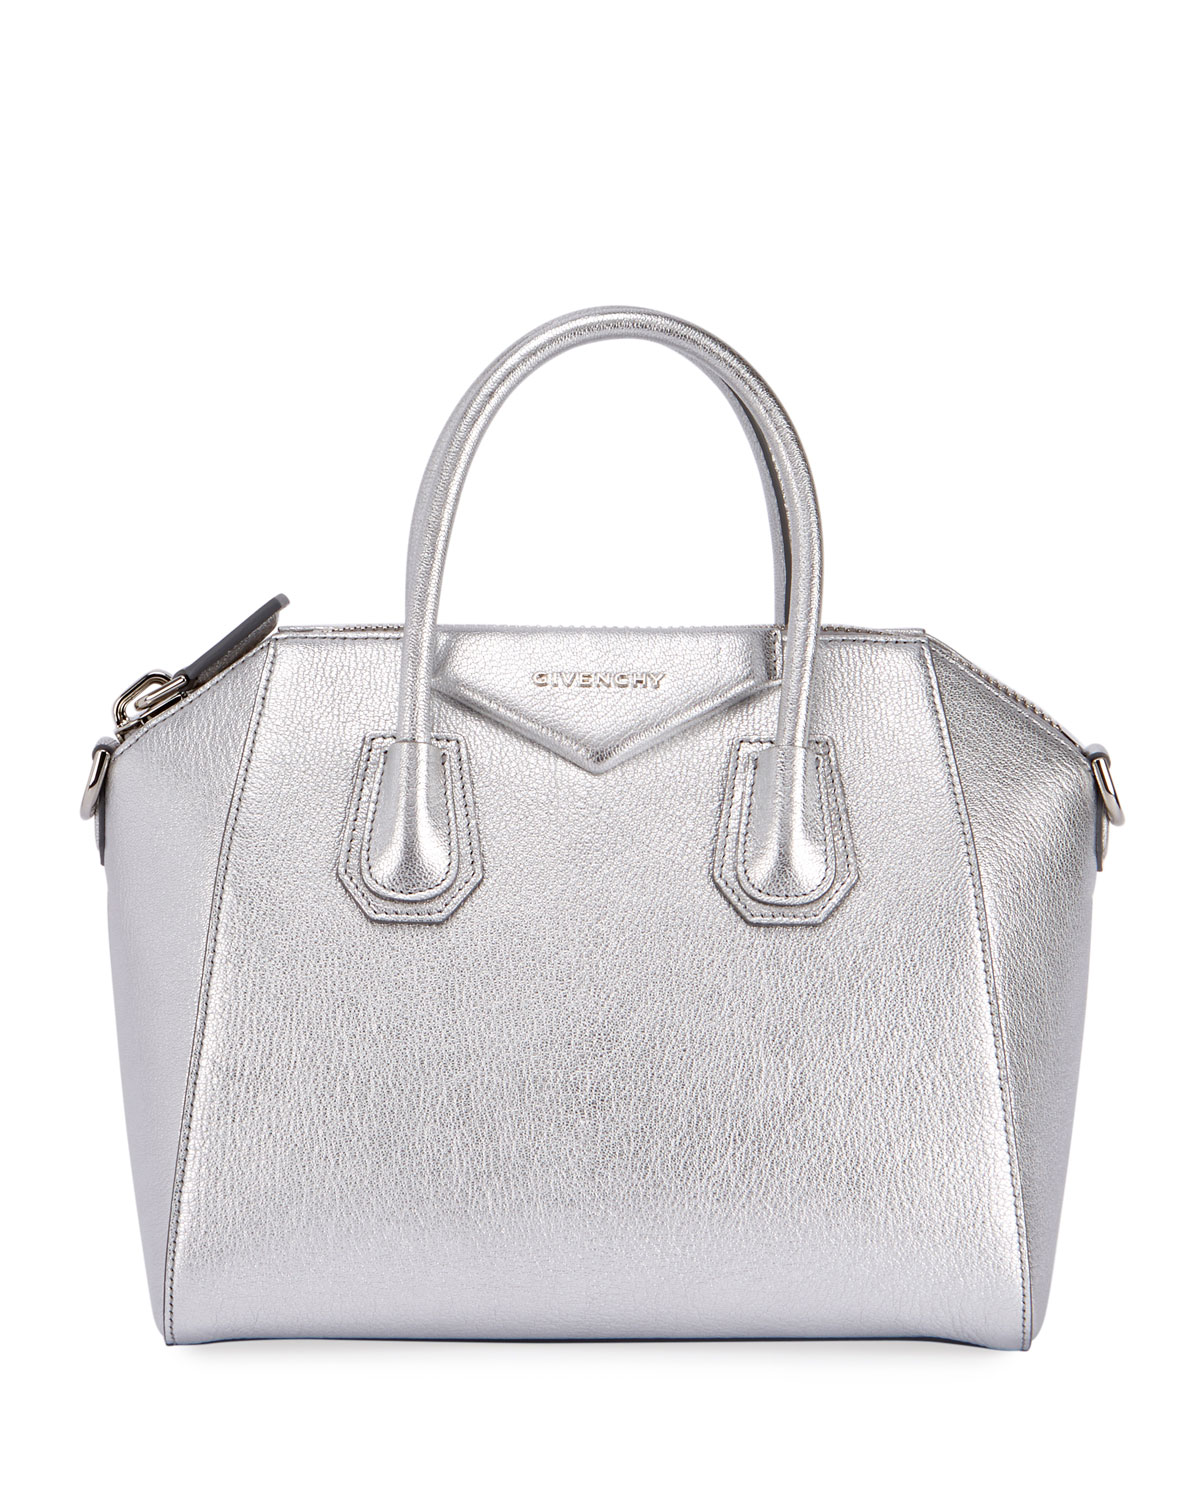 Givenchy Bag Price List Reference Guide   Spotted Fashion 10089bfdf2